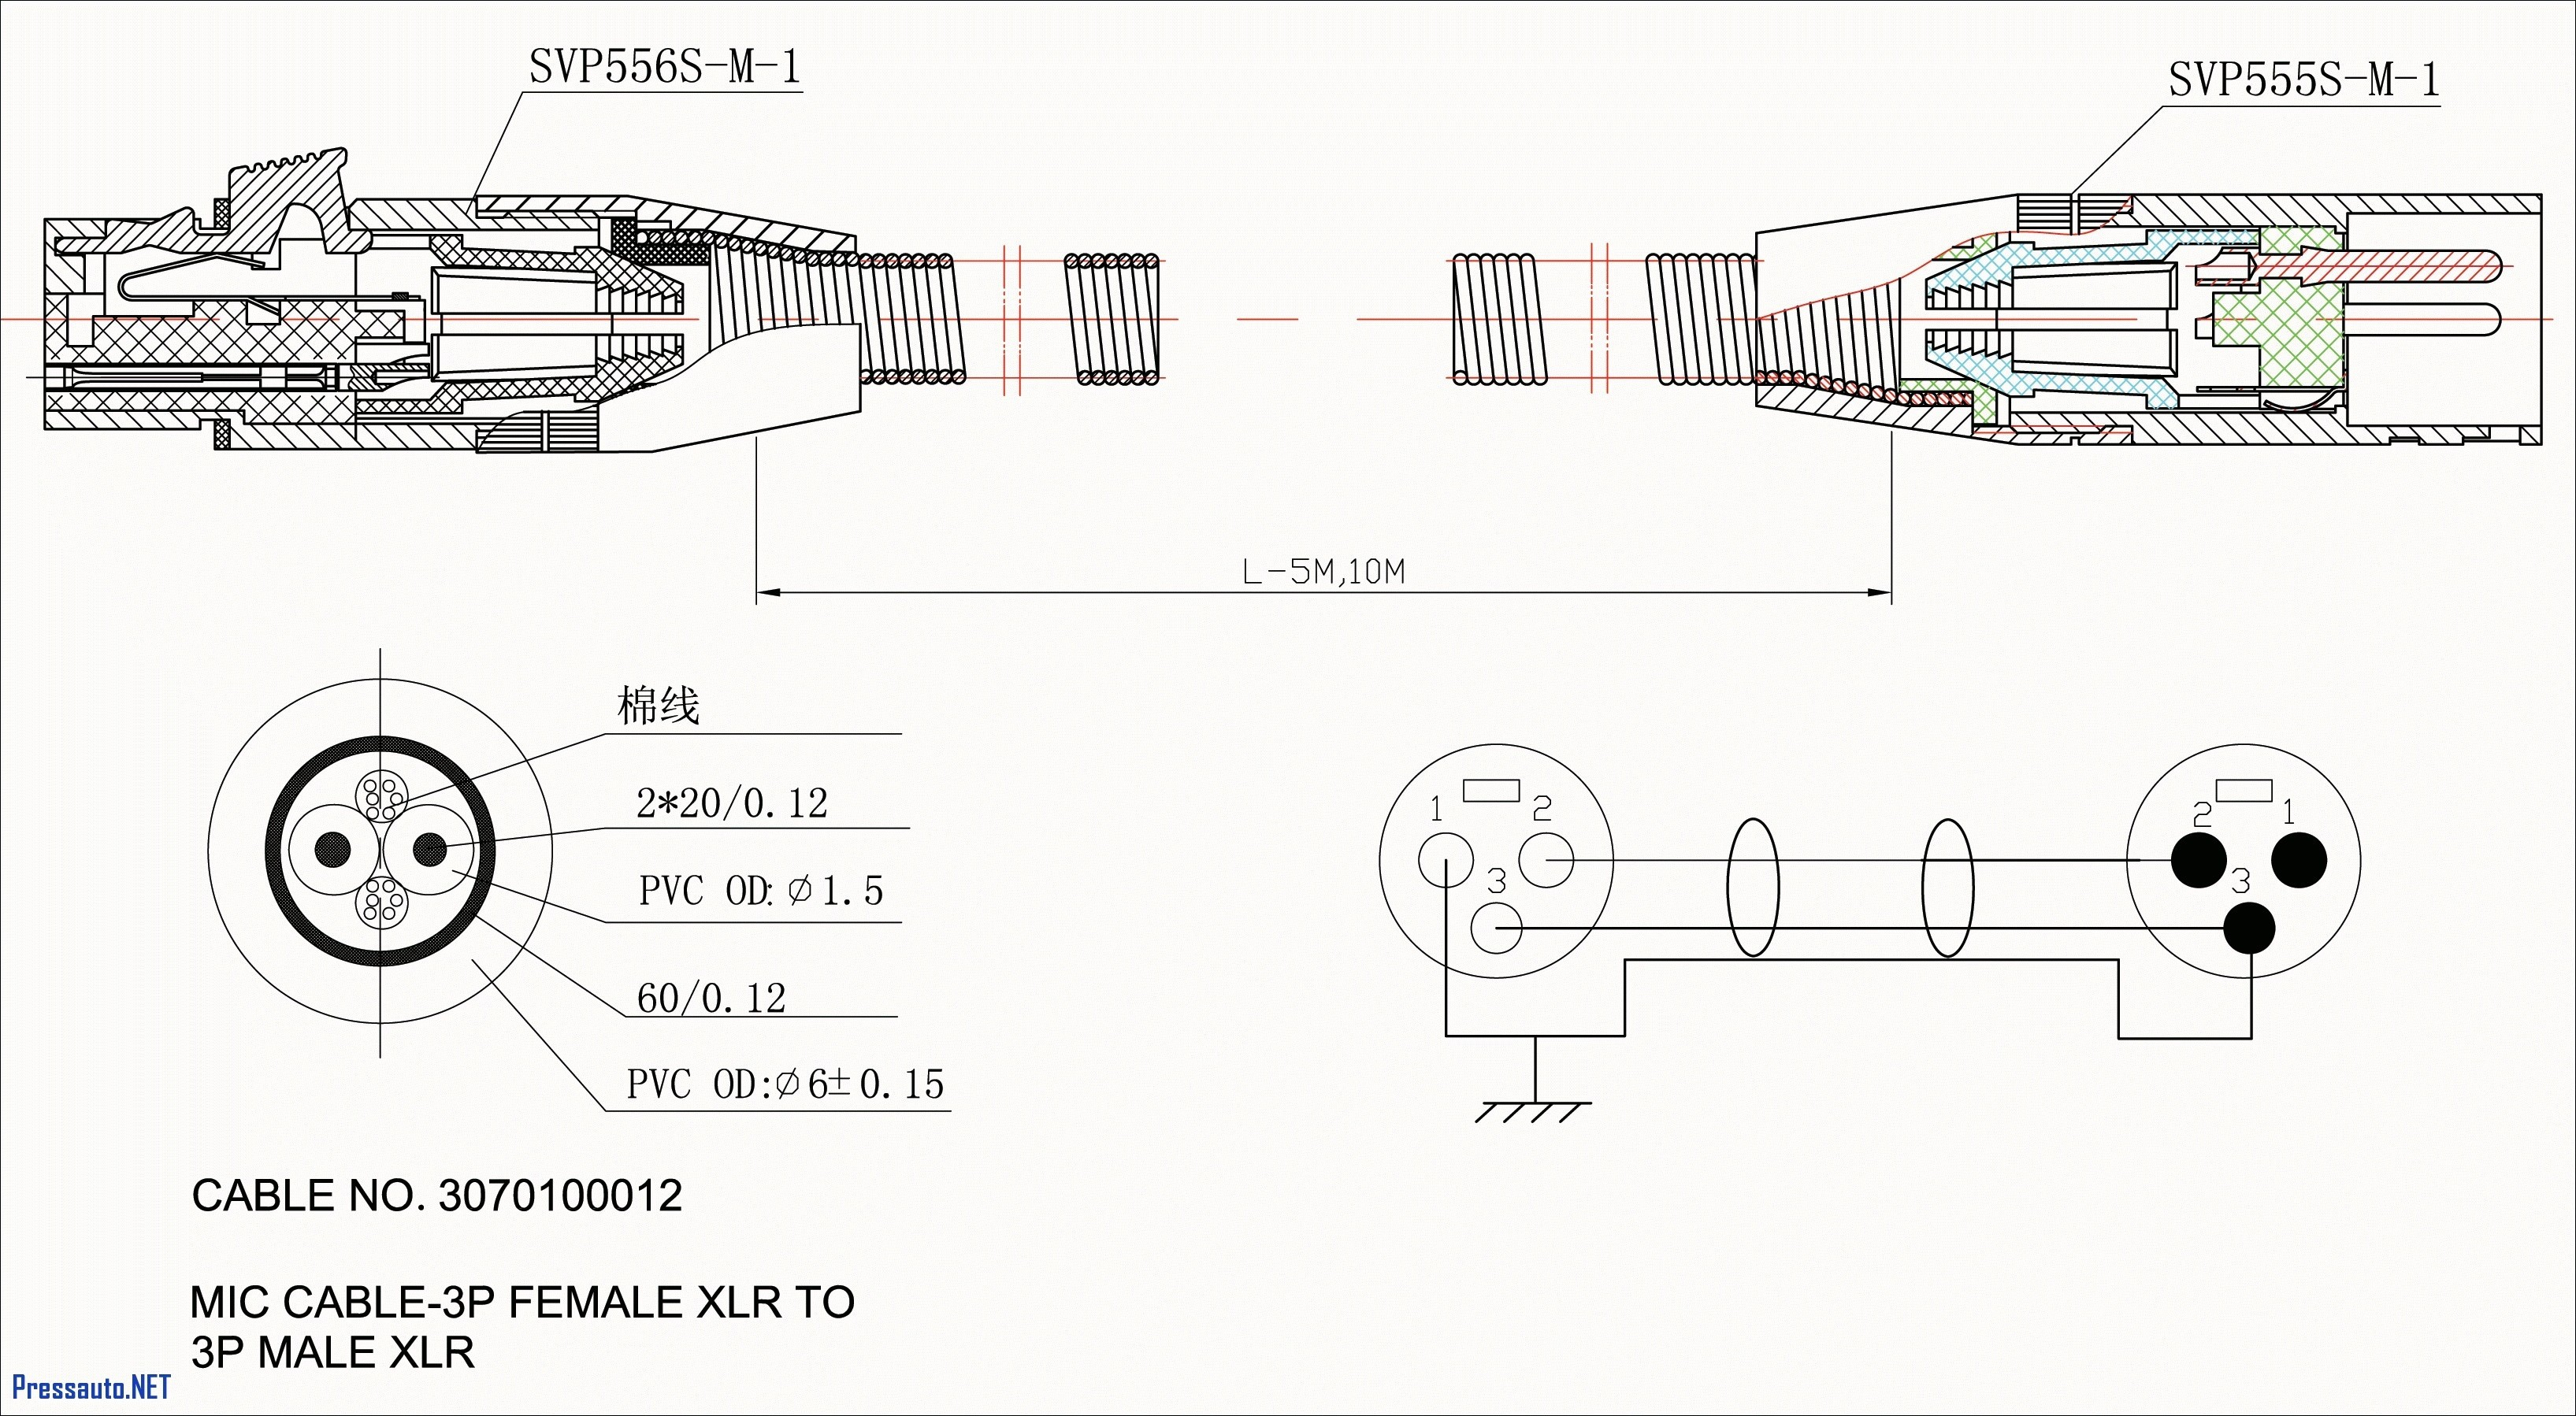 2002 Nissan Frontier Engine Diagram Nissan Frontier Trailer Wiring Diagram Shahsramblings Of 2002 Nissan Frontier Engine Diagram